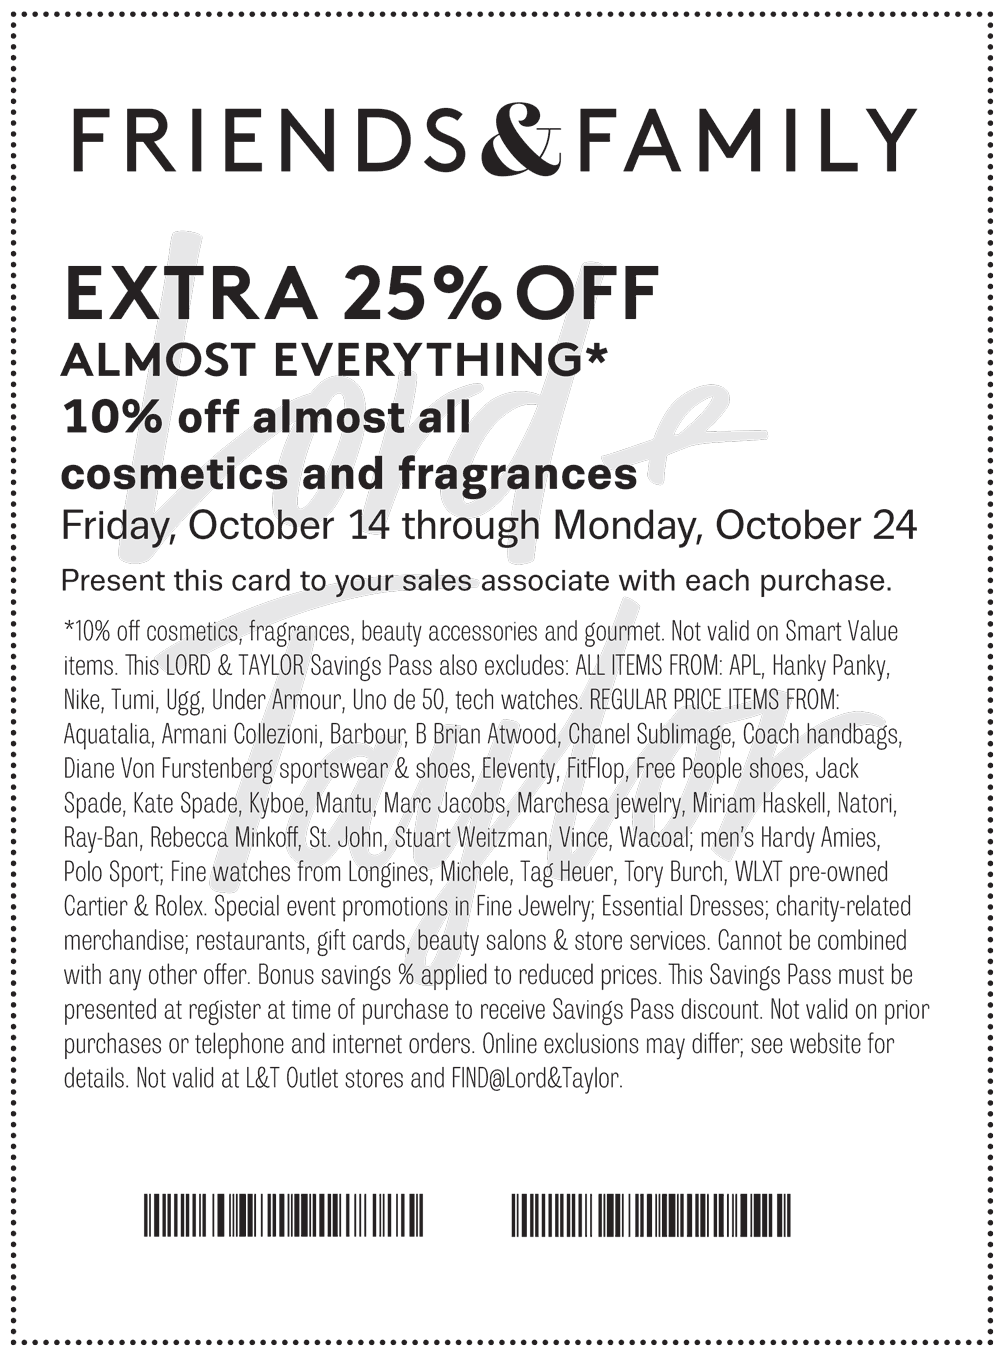 Lord&Taylor.com Promo Coupon Extra 25% off at Lord & Taylor, or online via promo code FRIENDS